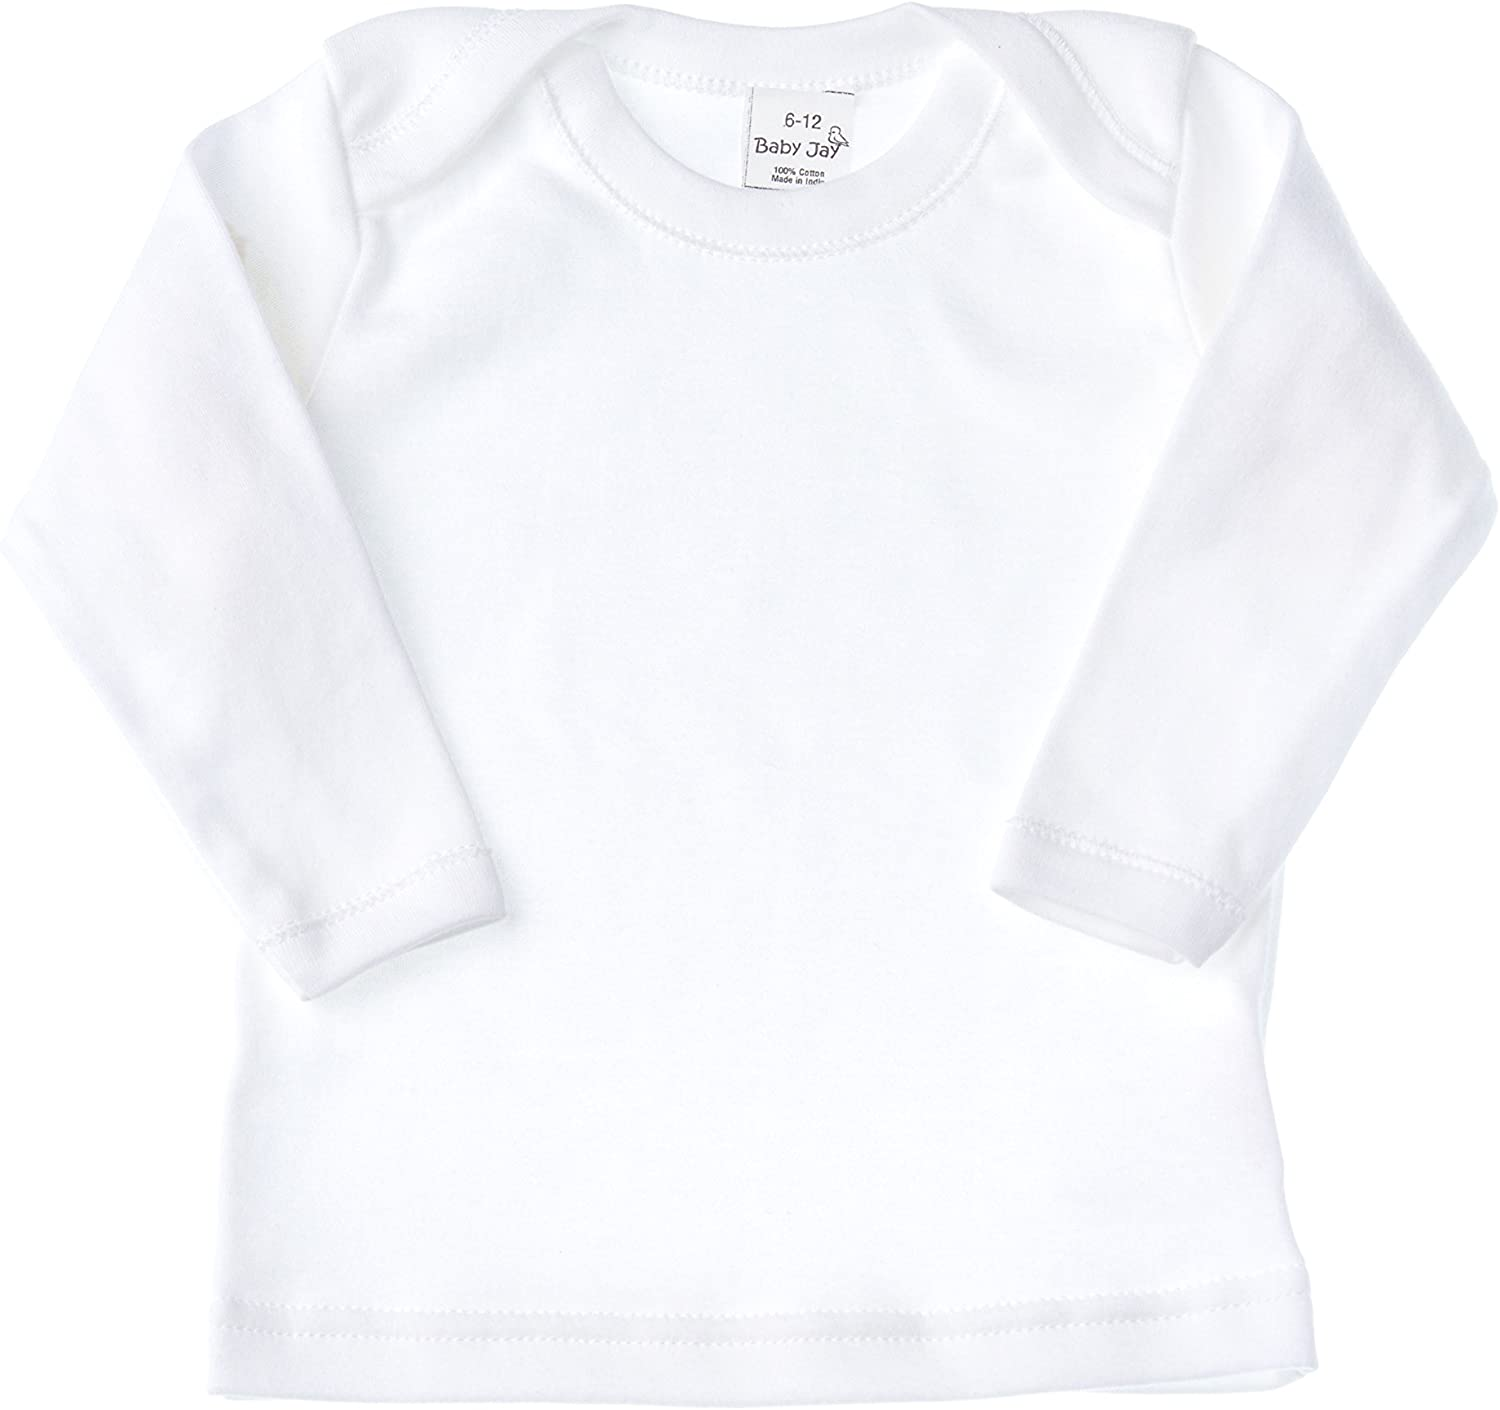 Baby Jay Long Sleeved Undershirt - White Unisex Baby and Toddler Soft Cotton Tee with Lap Shoulder - Boys and Girls T Shirt